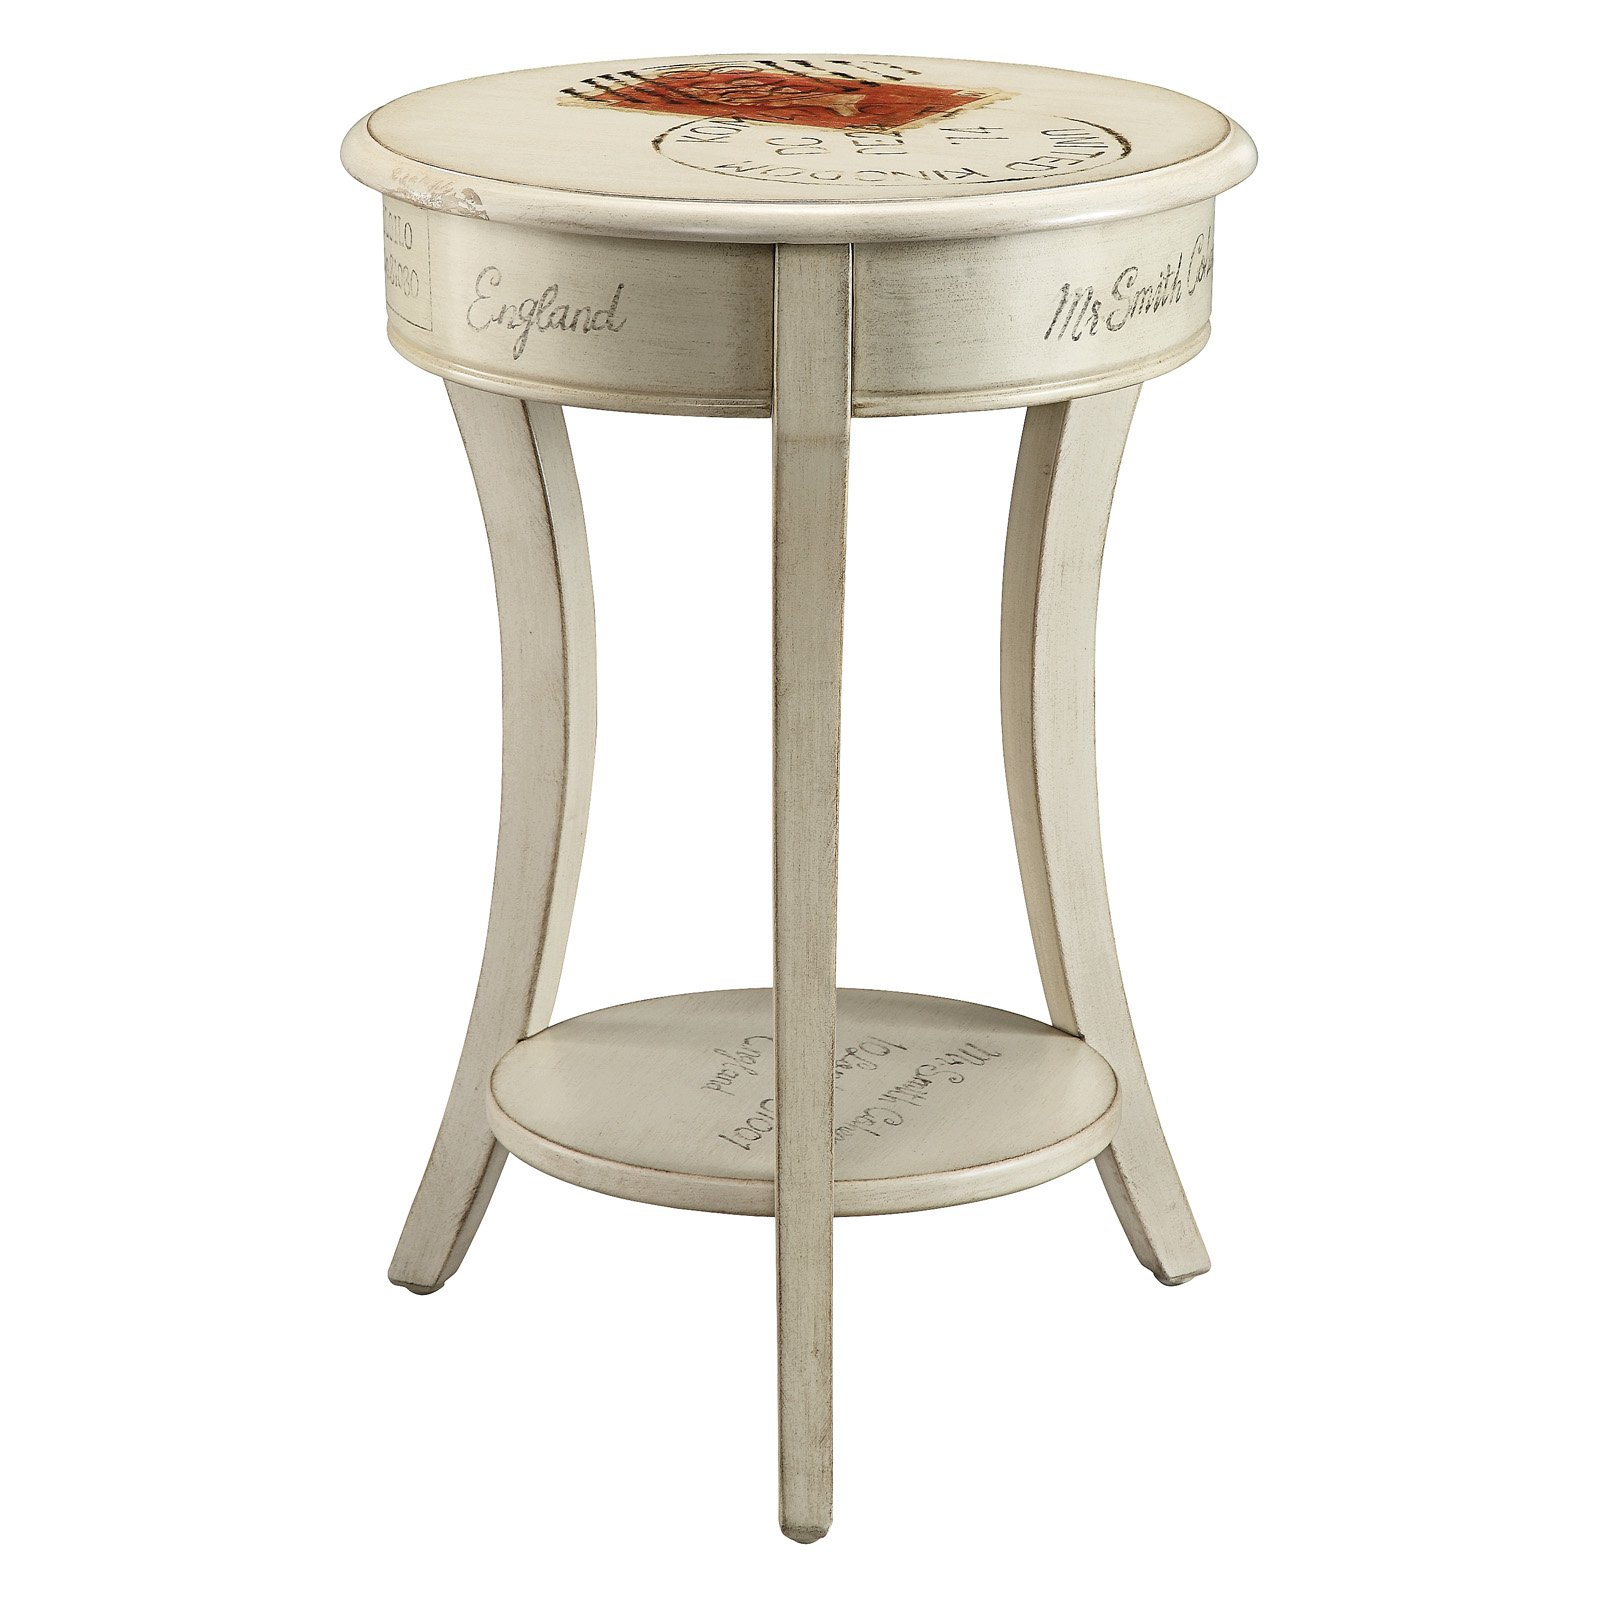 stein world postage painted round accent table marble gray tables slim mirrored bedside black linen tablecloth small nightstand lamps antique wheels for coffee with chairs living